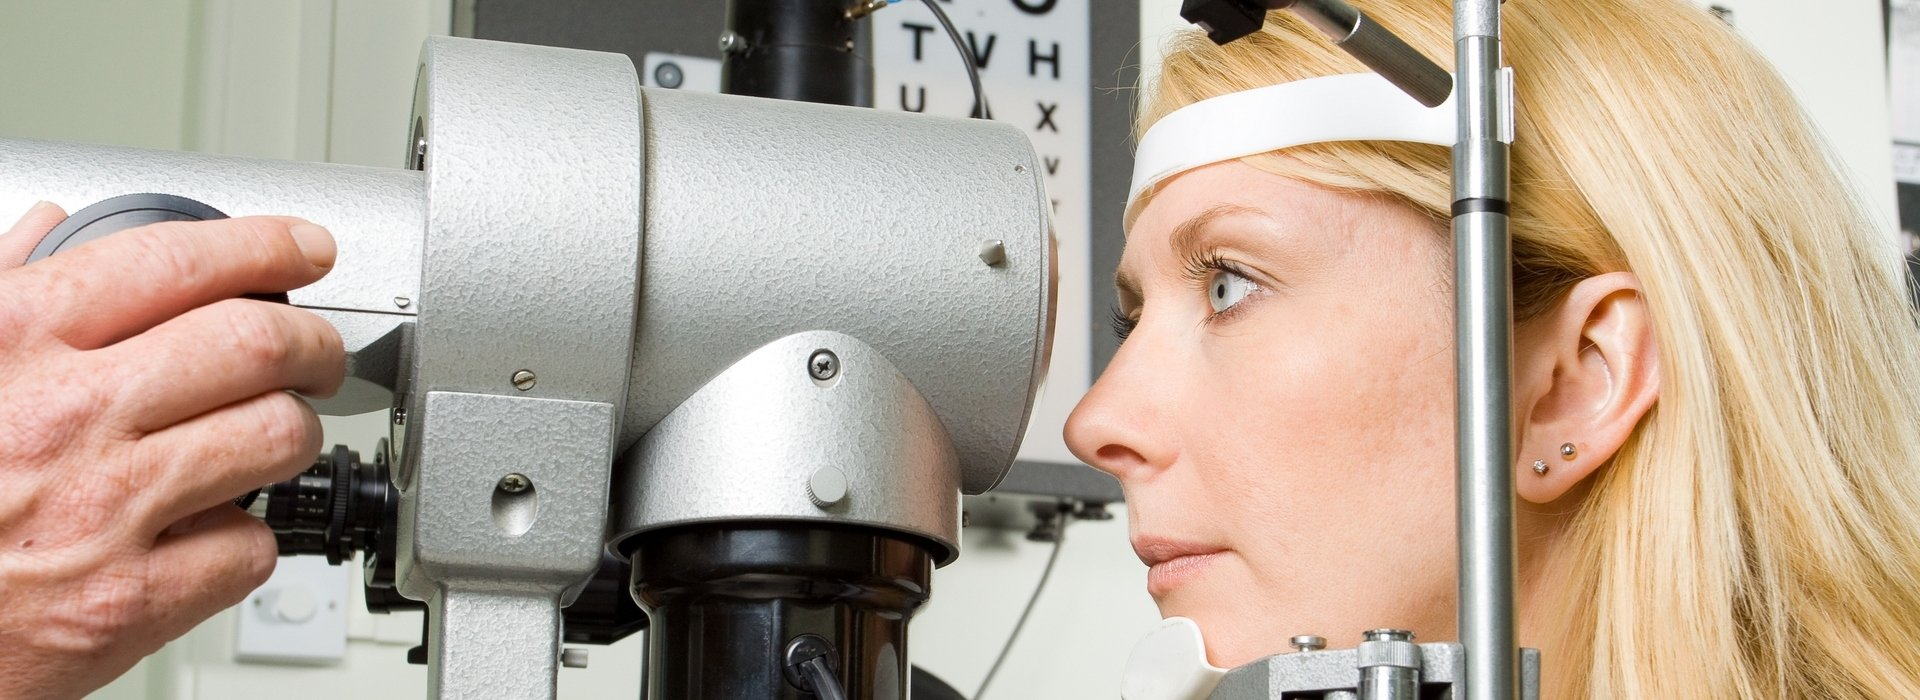 Glaucoma removal